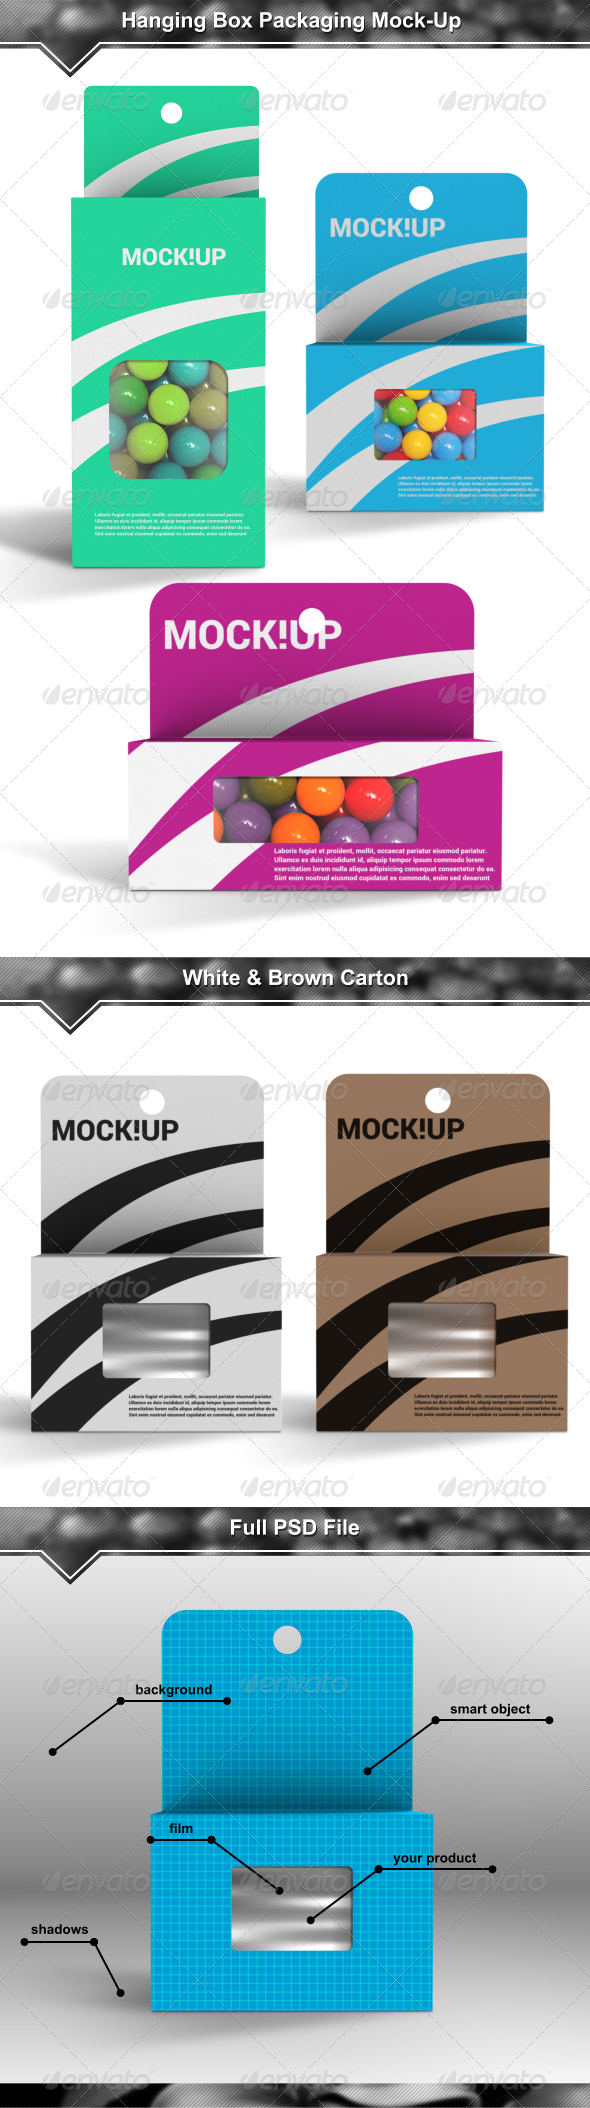 GraphicRiver Hanging Box Packaging Mock-Up 8011848